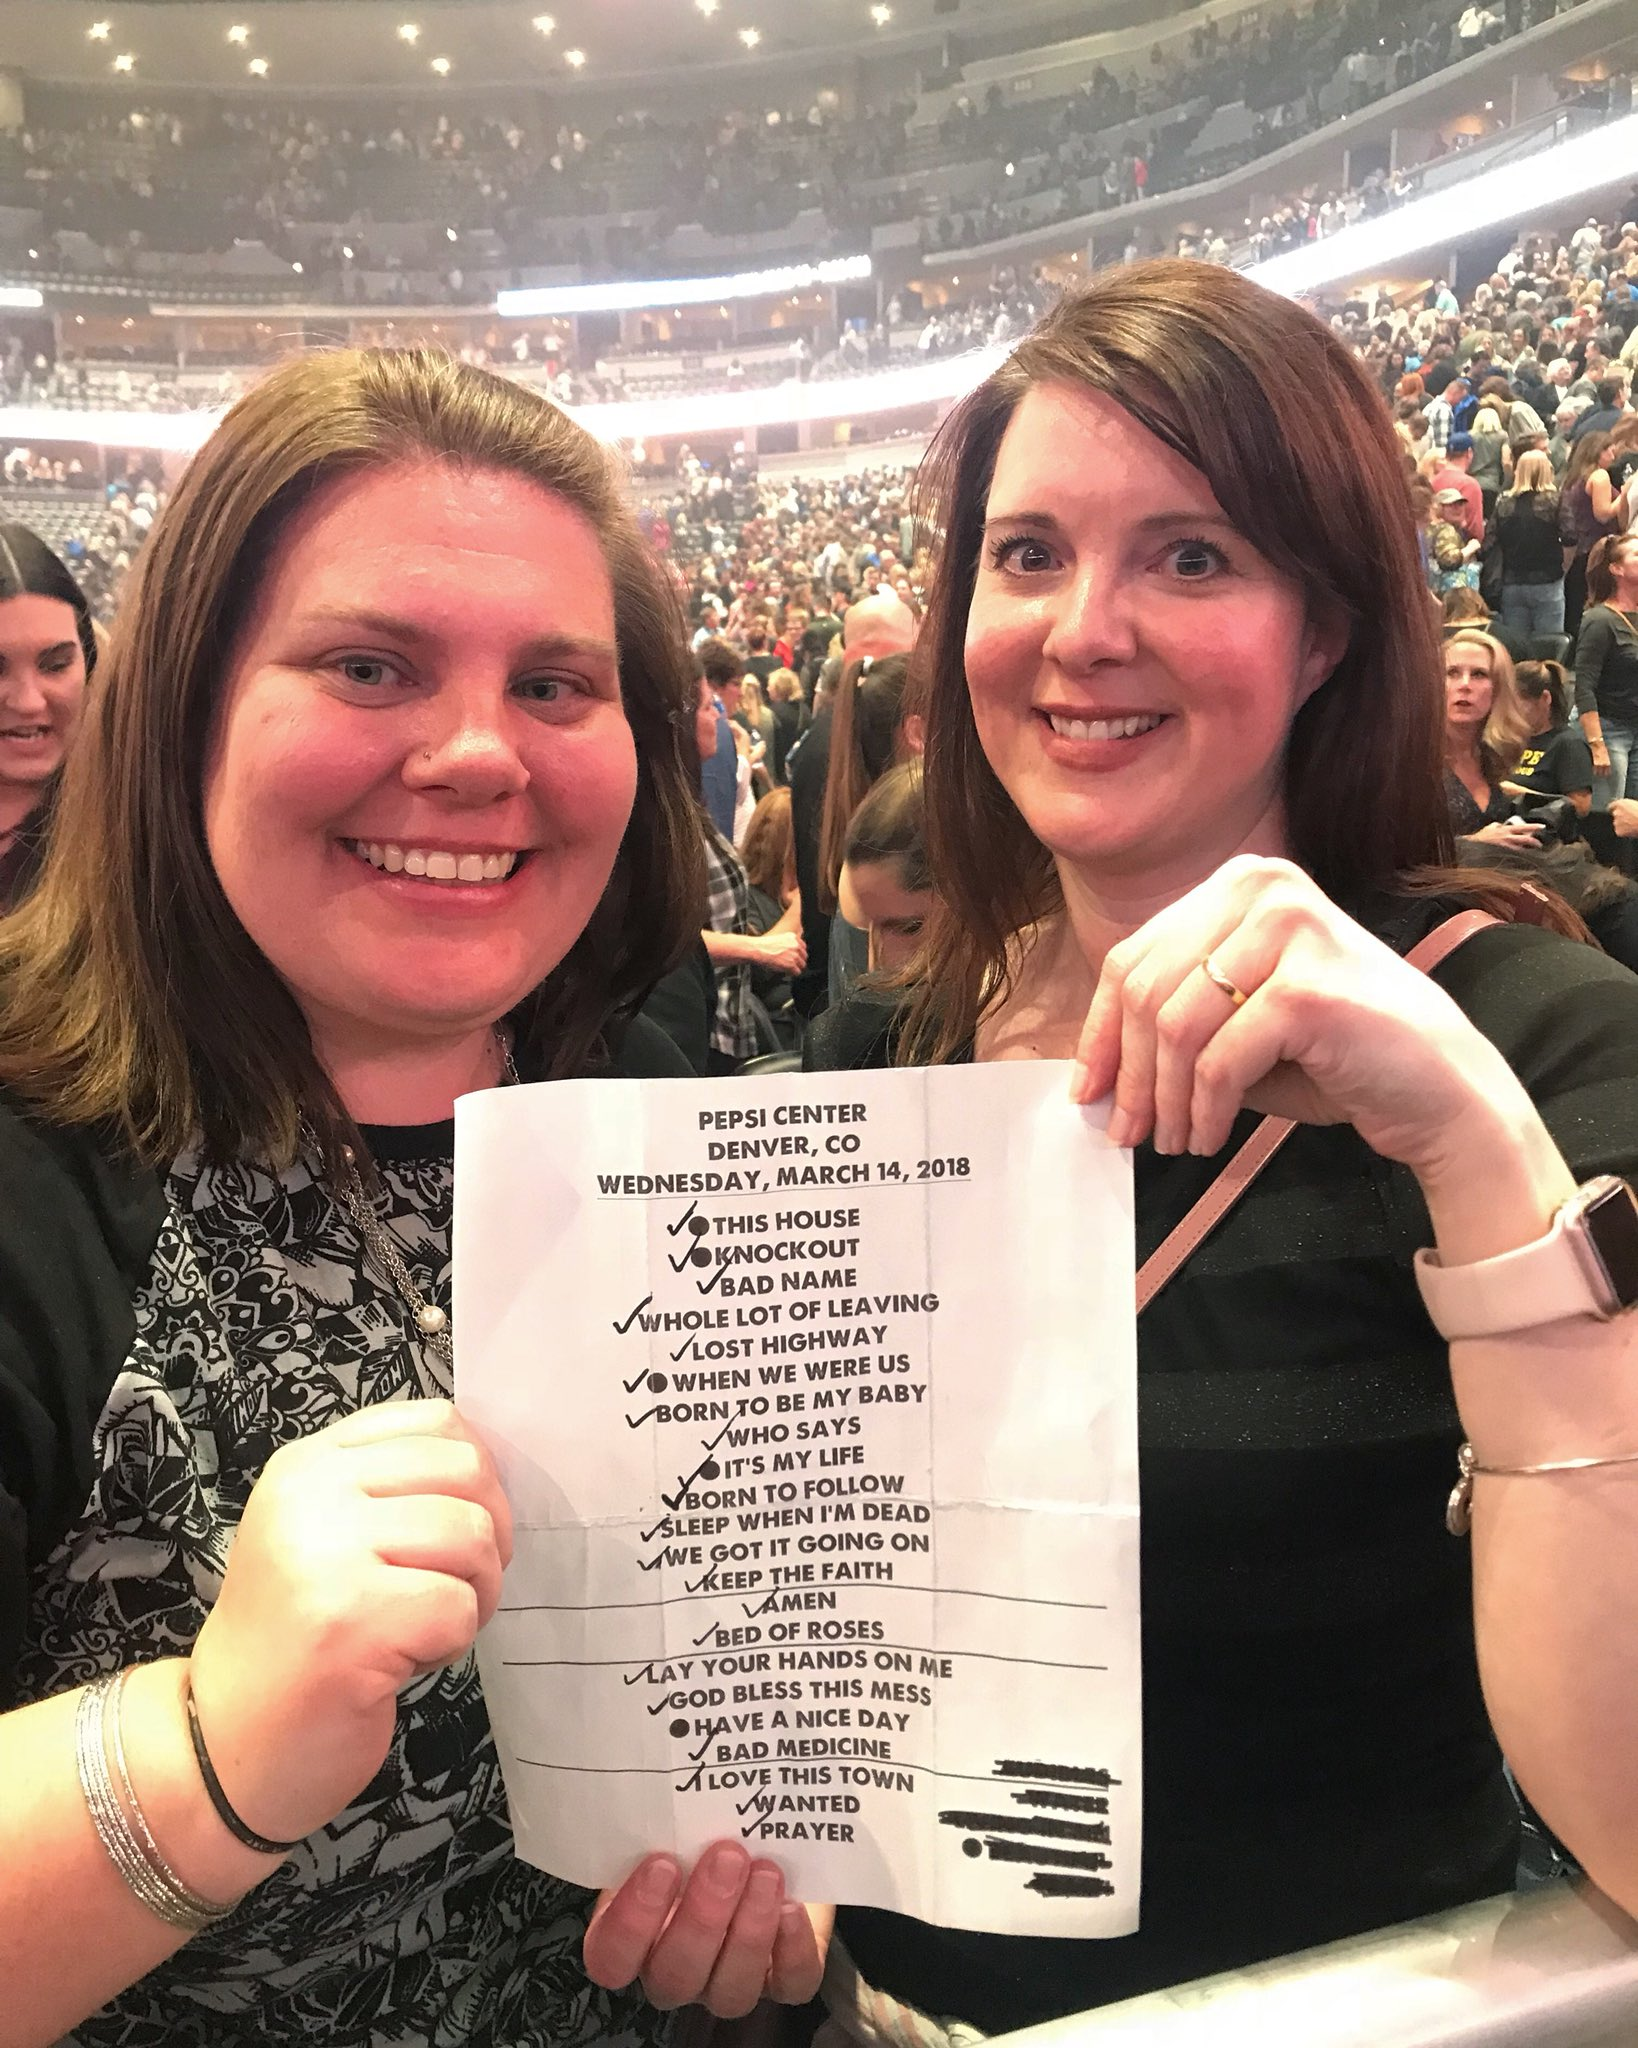 Our setlist from Denver. Who's going to SLC tonight?? #THINFStour https://t.co/NBh5vpwPva